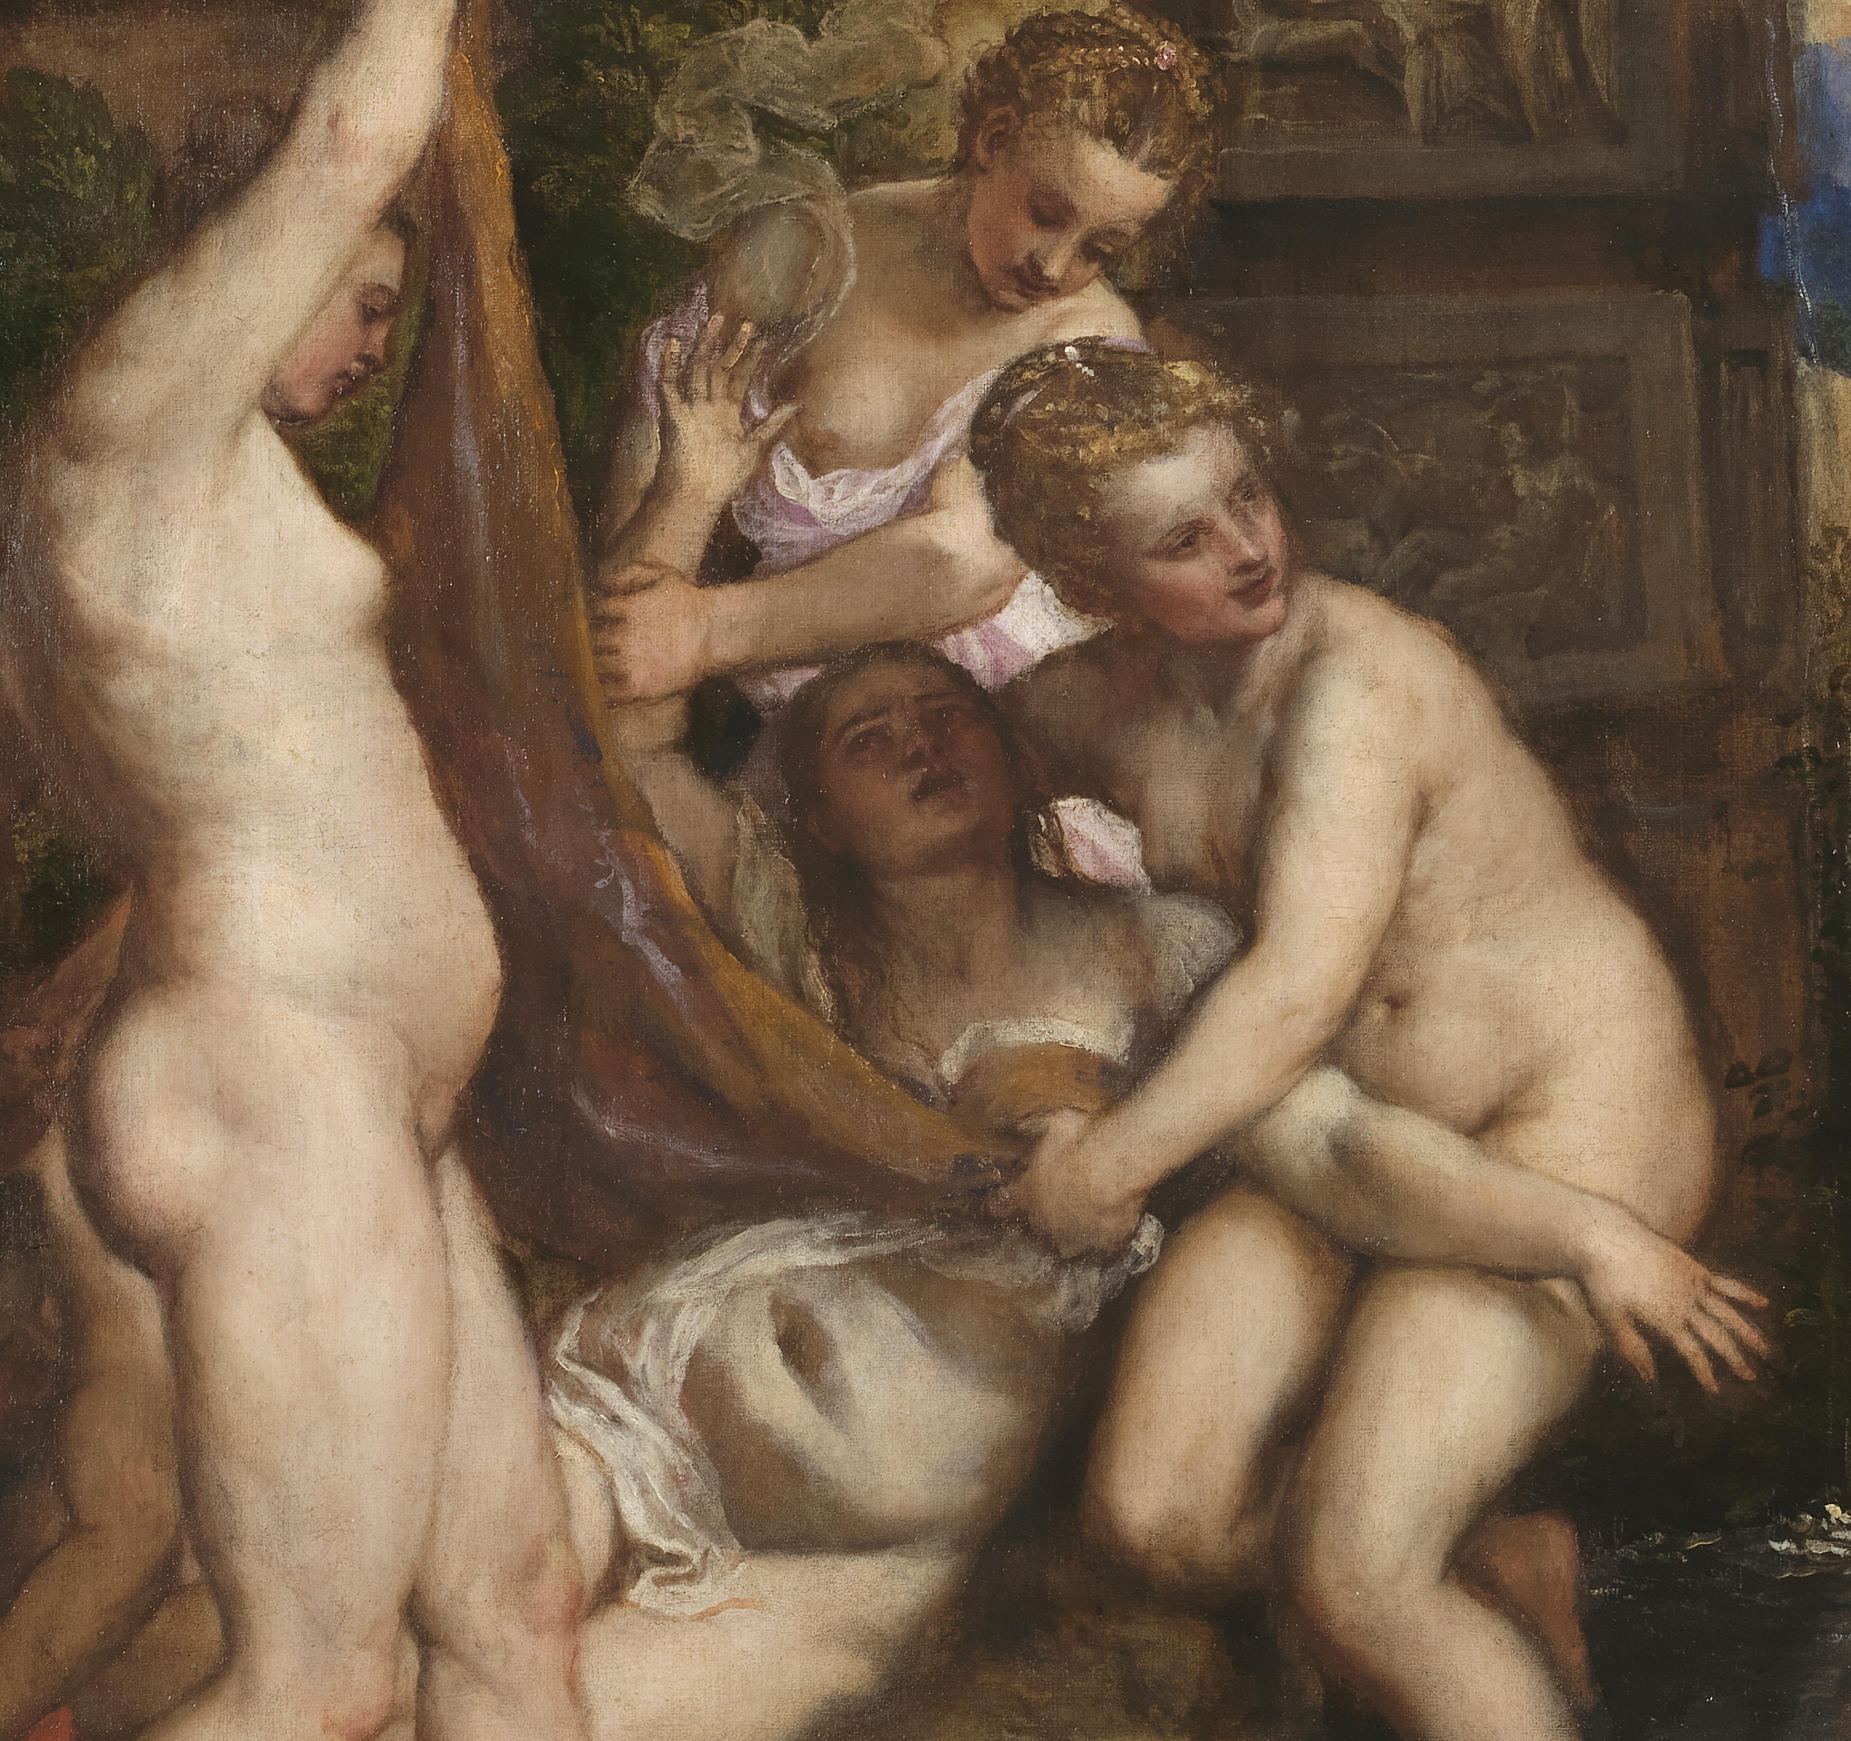 A close up of Callisto in the painting Diana and Callisto by Titian.